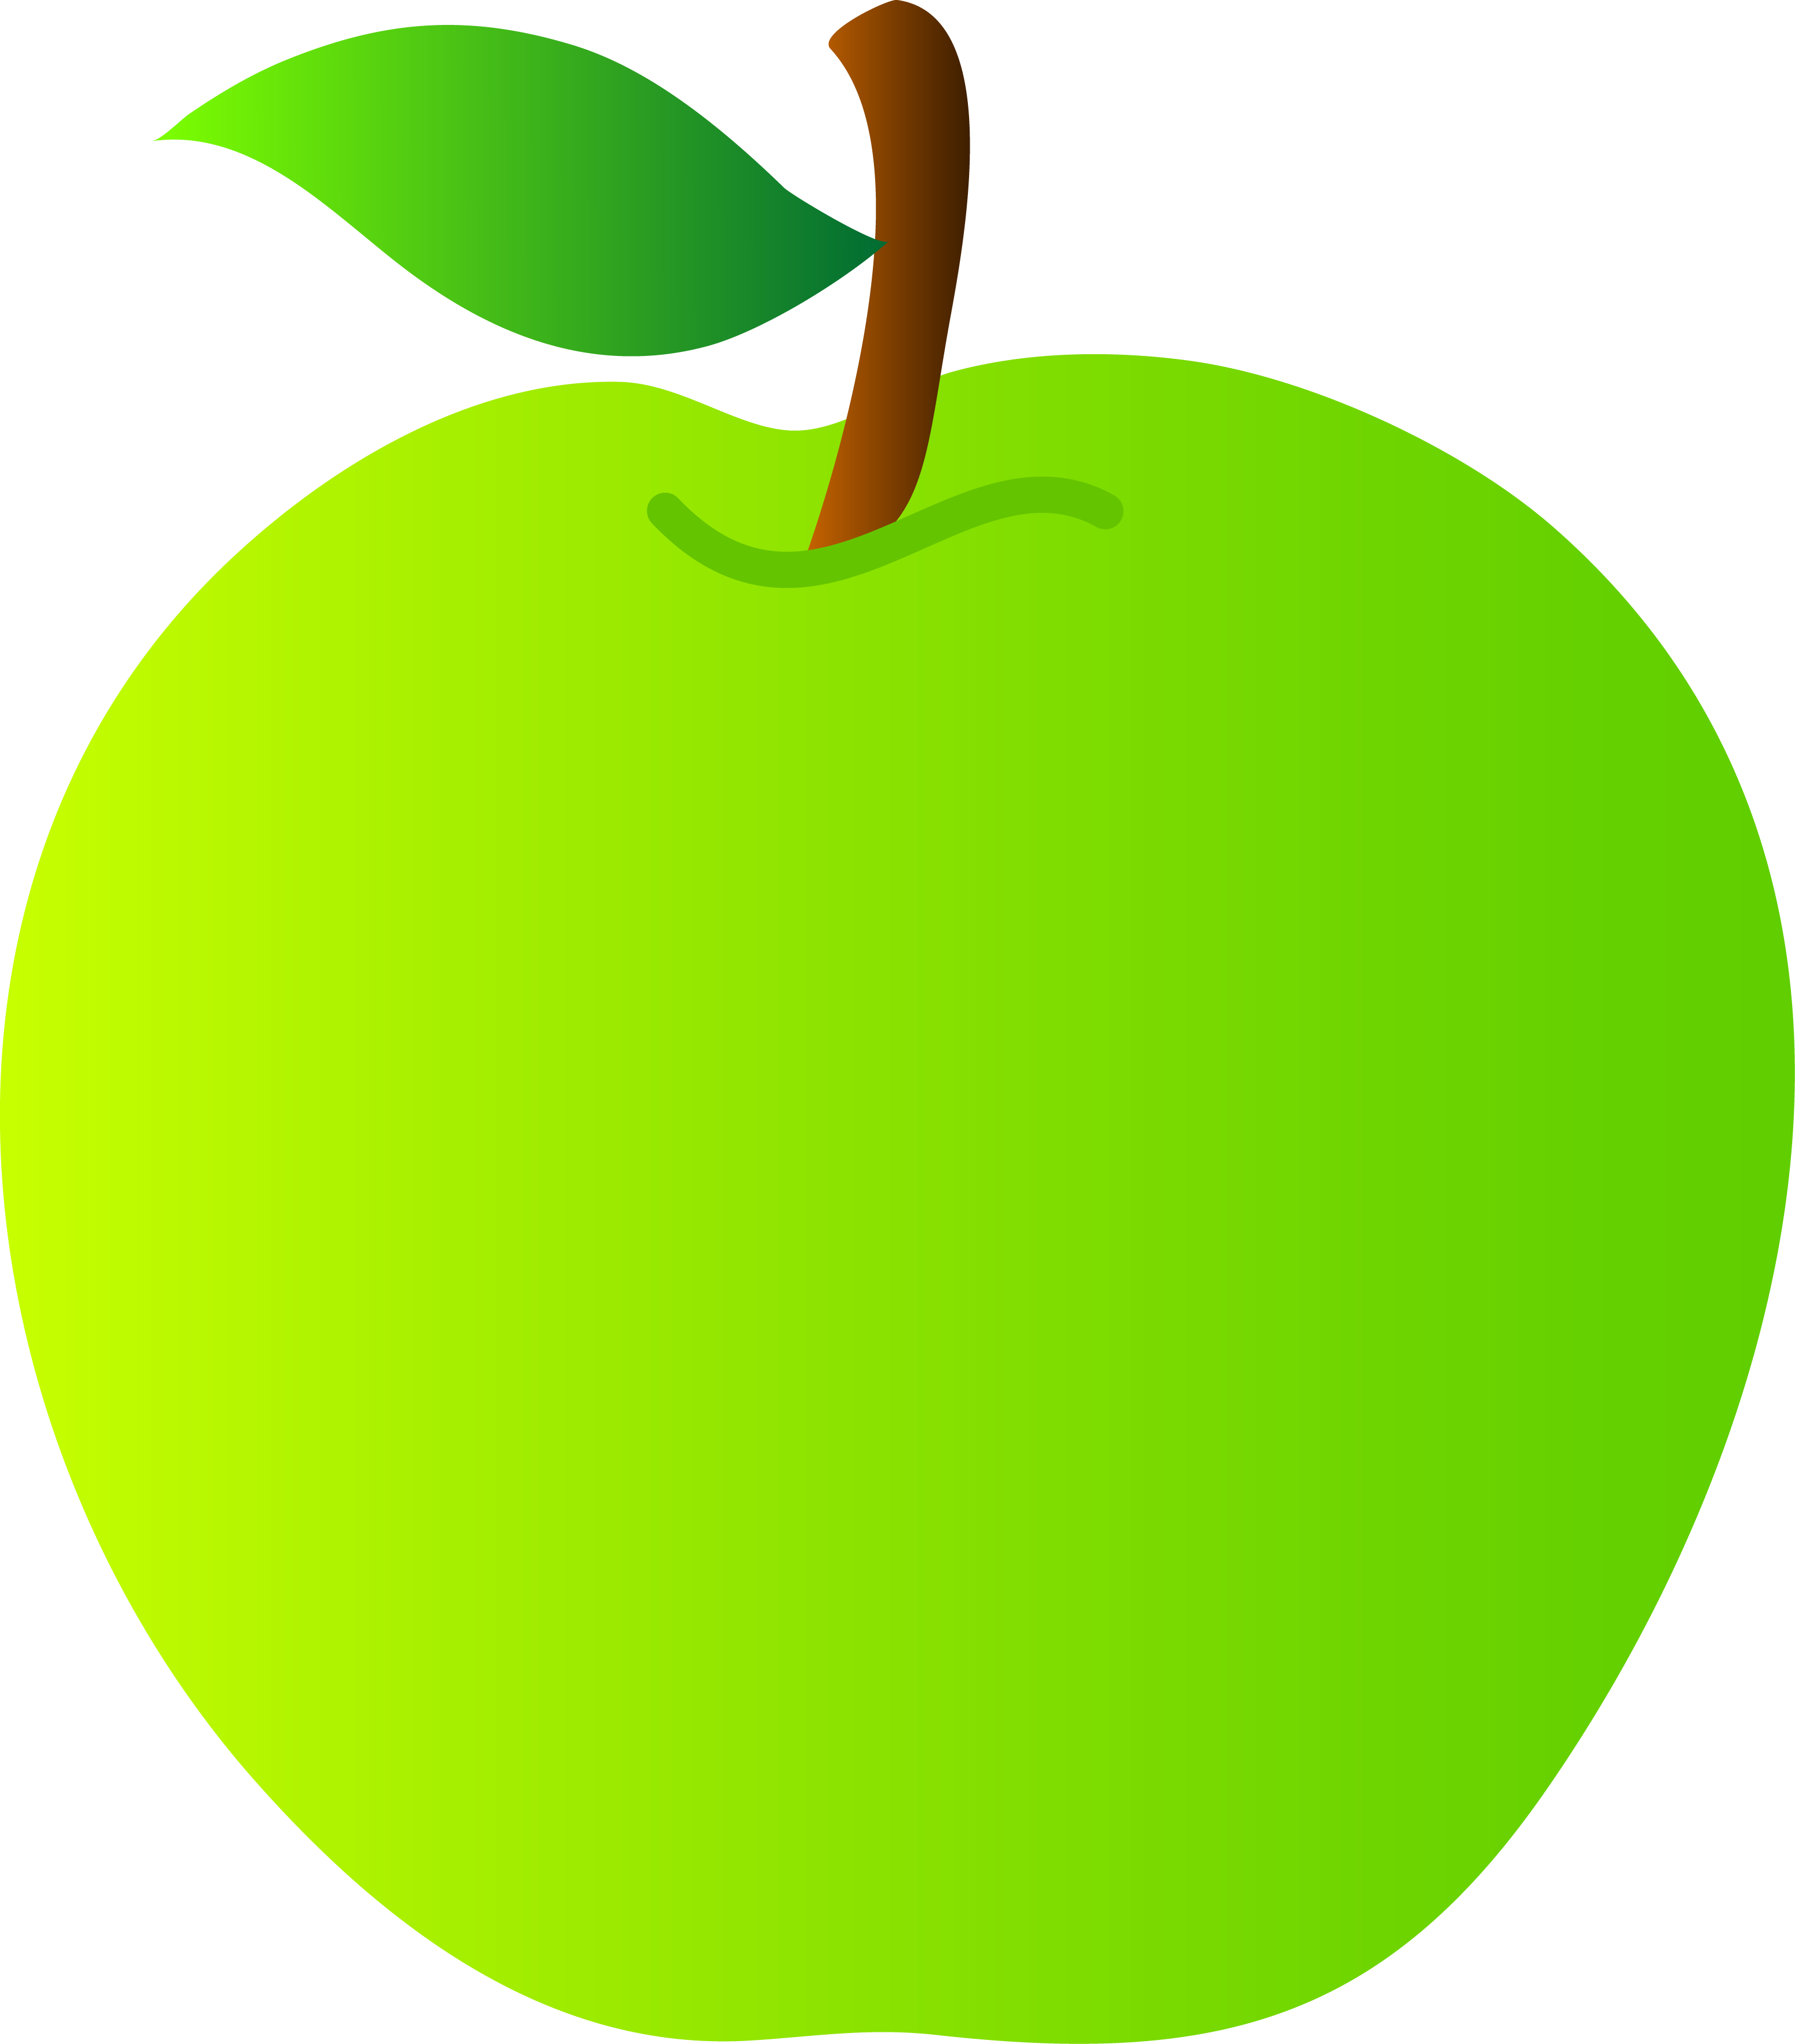 svg royalty free Bite vector. Healthy green apple clipart